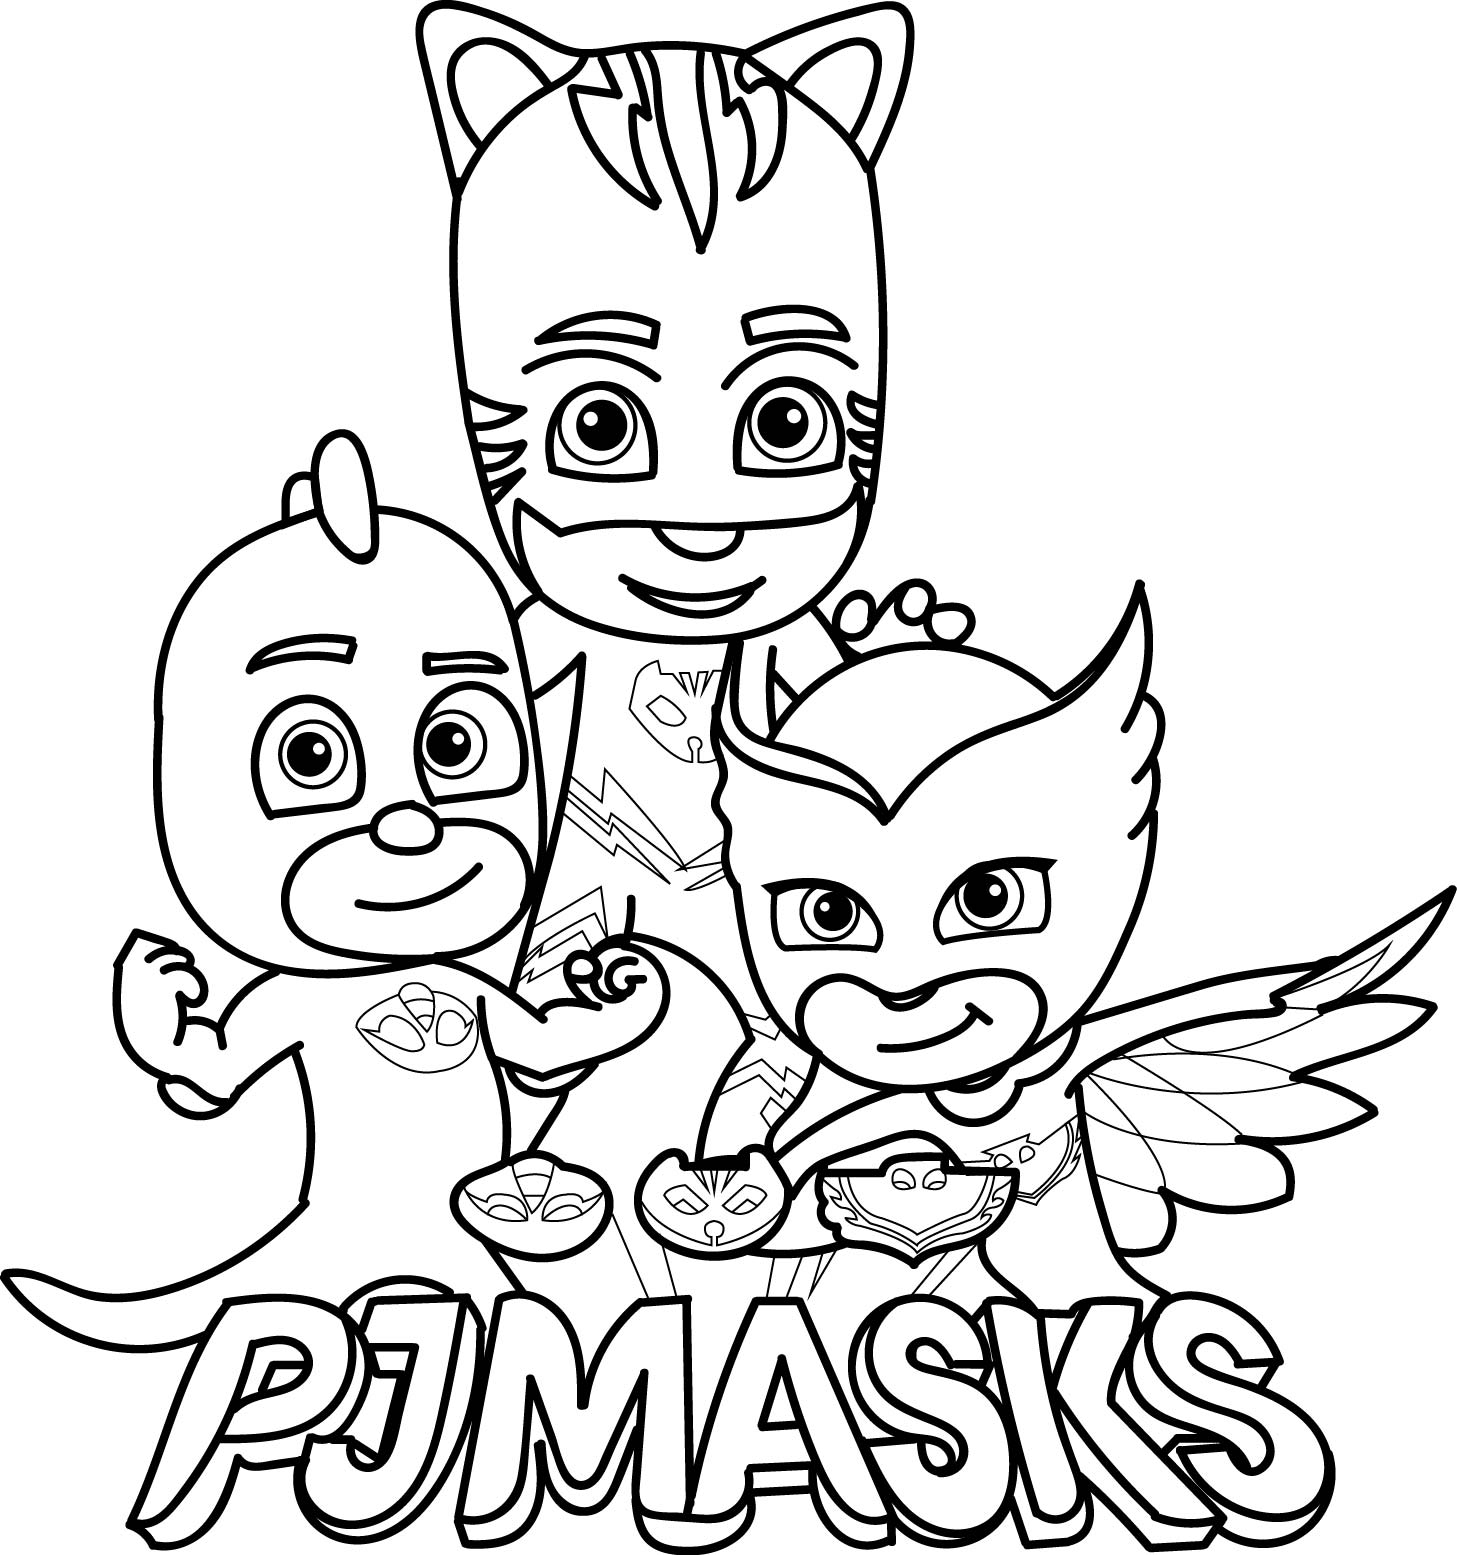 pj max coloring pages PJ Masks Coloring Pages   Best Coloring Pages For Kids pj max coloring pages